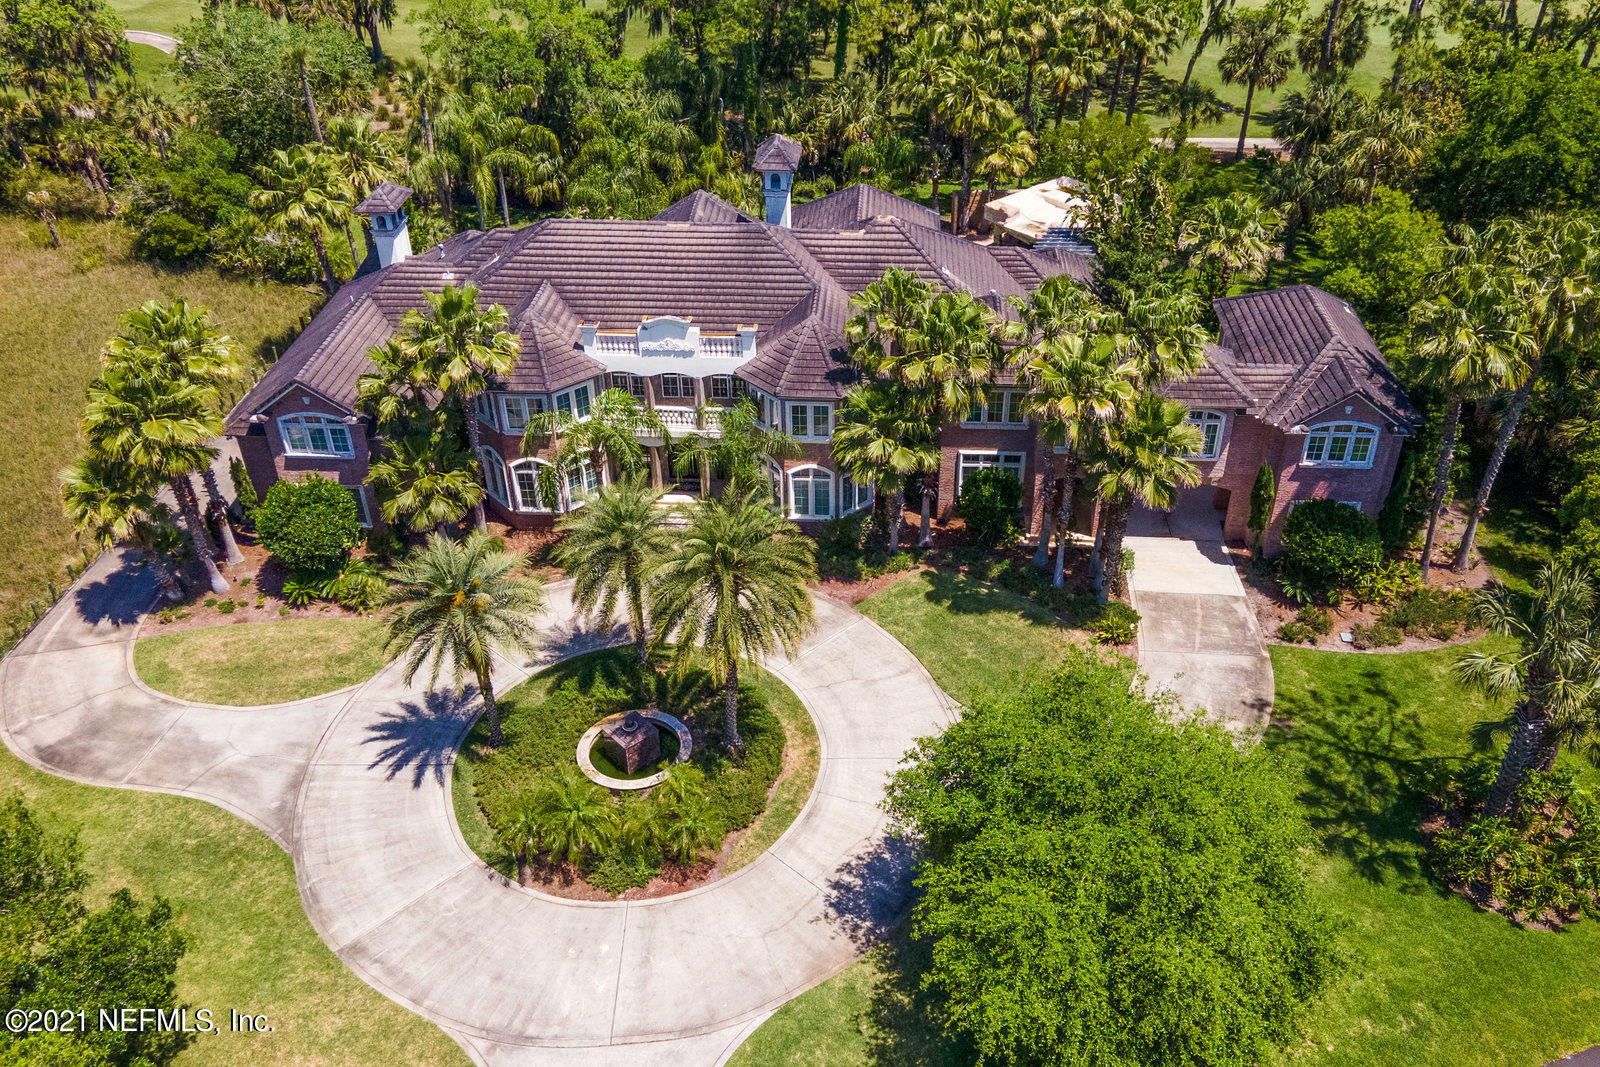 This Elegant Estate is designed for the owners who love privacy  Only 4 other homes share the cul de sac location.  Entering the grand foyer, you will overlook the Rotunda, one of the many delights you will see while touring the one of a kind home. On the left, is the formal dining with an included, unique granite table.  A walk-in wine cellar and butler pantry makes entertaining easy. Next find the showcase dream kitchen and gathering room.  Step out to the Resort Style pool w/Baja Sun Shelf, Swim-up Bar, Summer Kitchen and Waterfall. Relax indoors in the fireside Library/Game Room.  Continue on to the master suite wing.  More Marble, Granite, Onyx and Hardwood. 2nd floor left is an apartment suite, 2nd floor right is the theater wing.  3 more bedroom suites complete the the 2nd floor. The home's locale is on the 10th fairway. The golf cart is adjacent to the lovely woodsy rear of the home.  Marsh Landing Club is just step away. Welcome to Home!